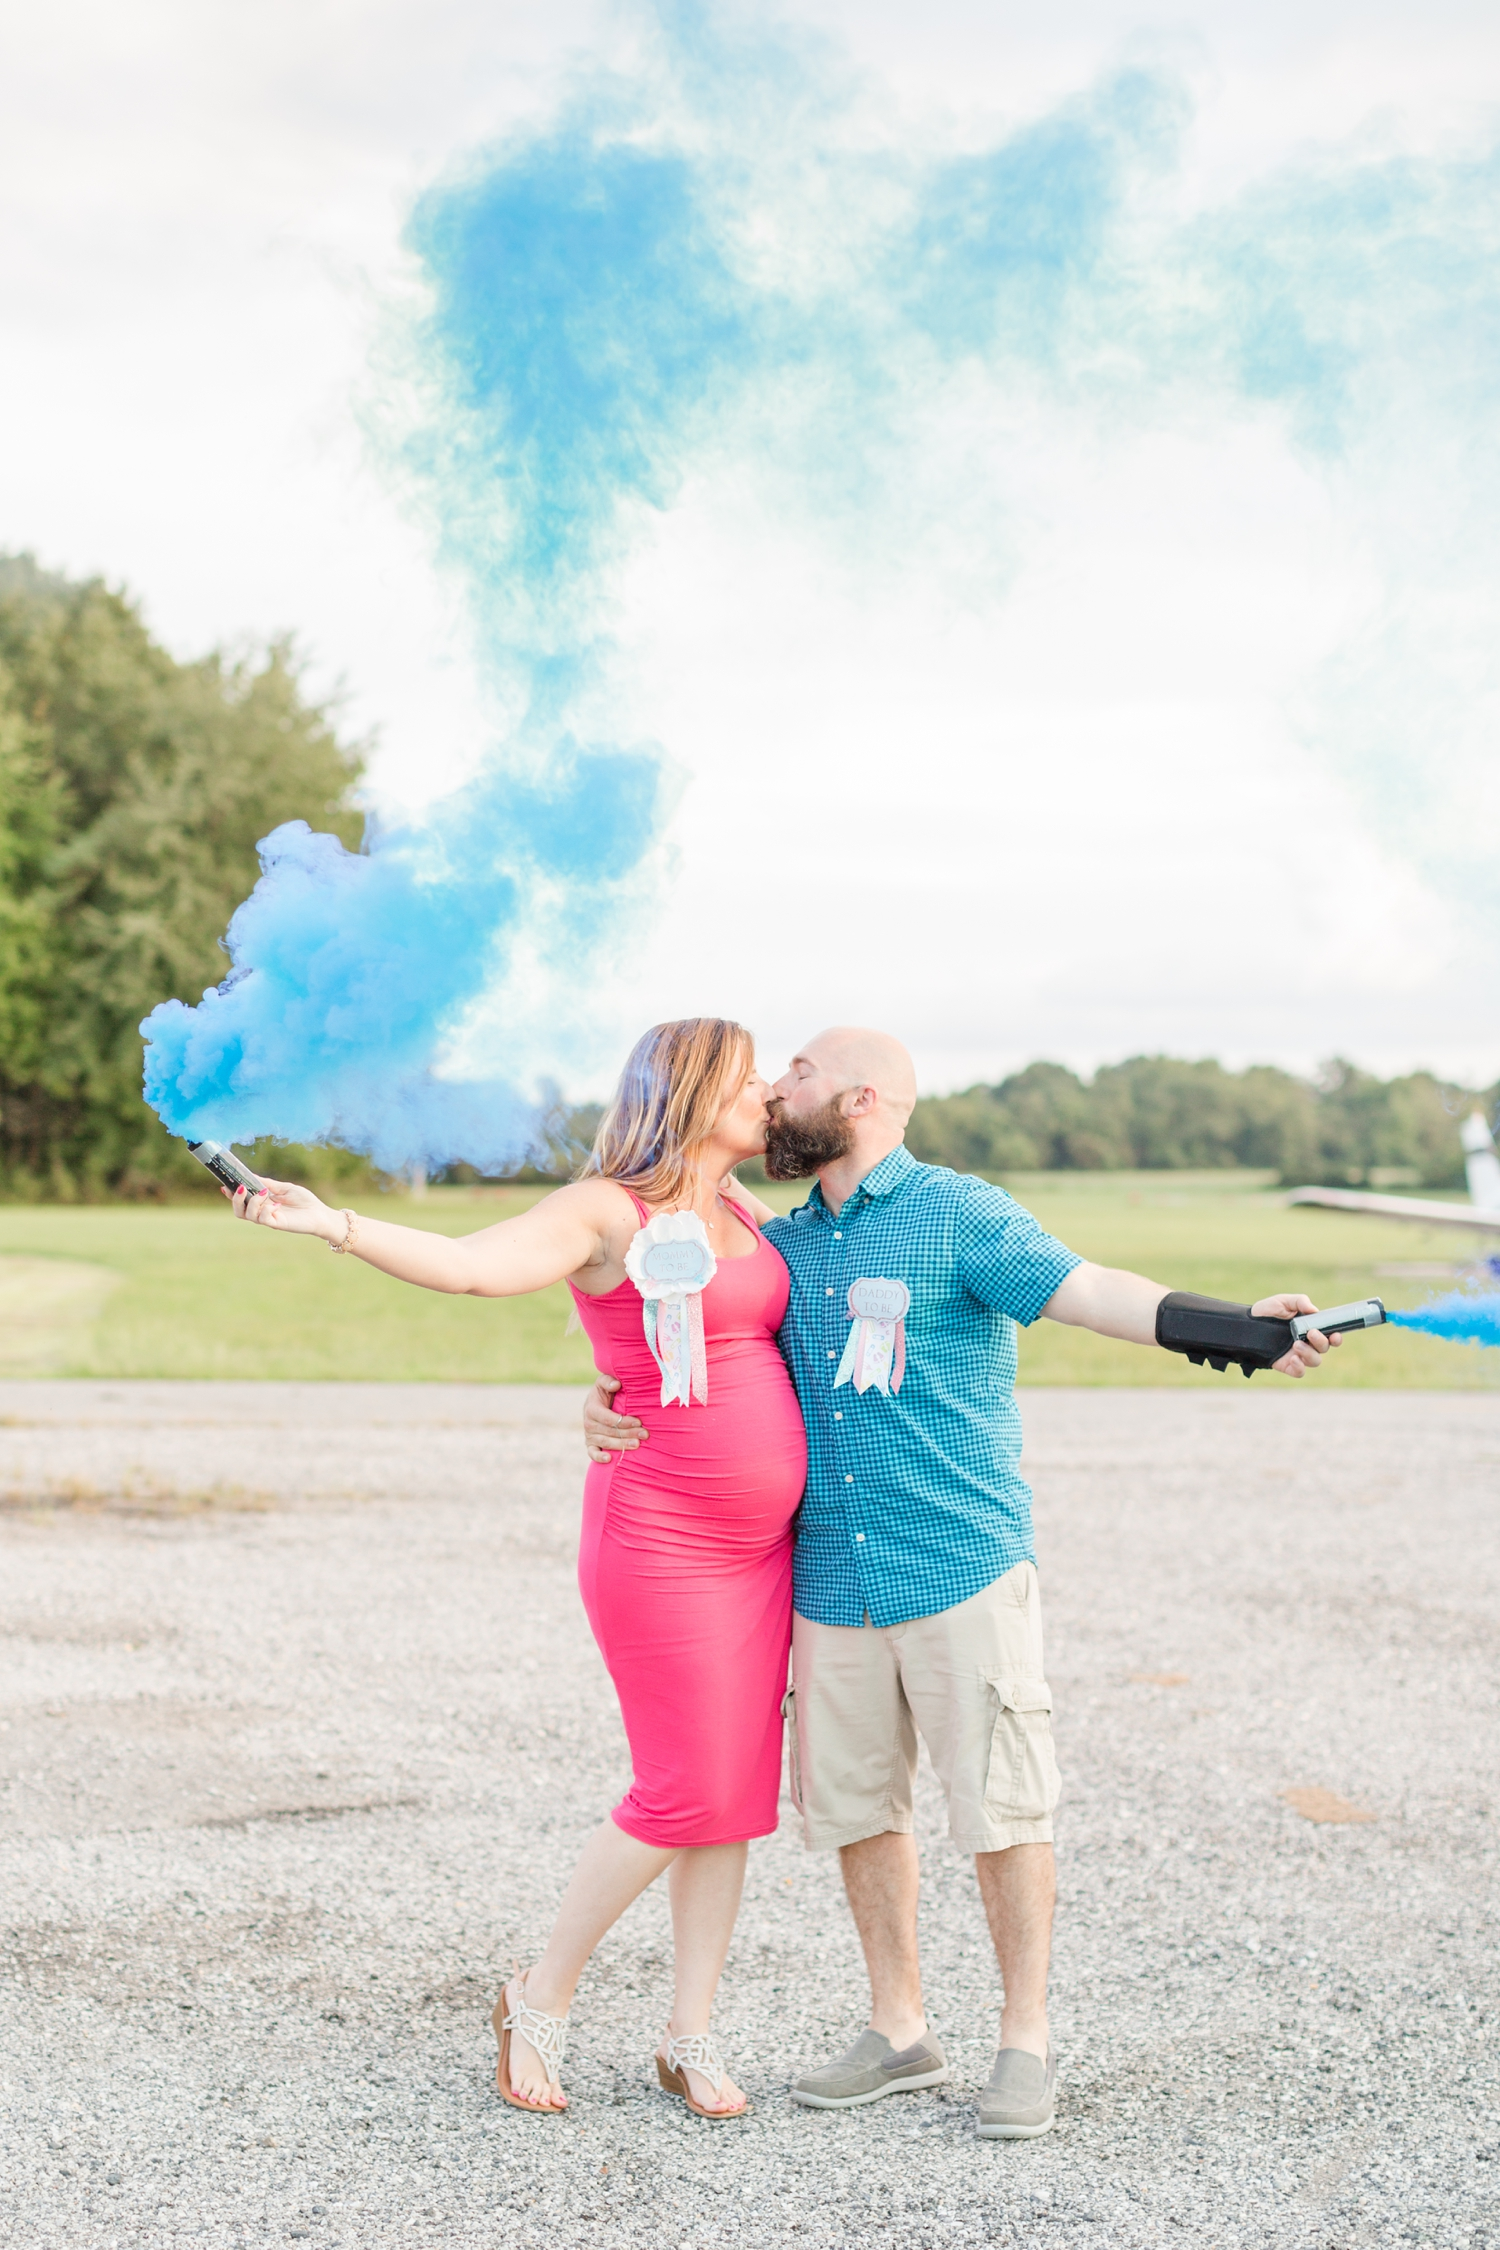 Calvert Gender Reveal-60_Baltimore-Maryland-Gender-Reveal-Maternity-photographer-anna-grace-photography-photo.jpg